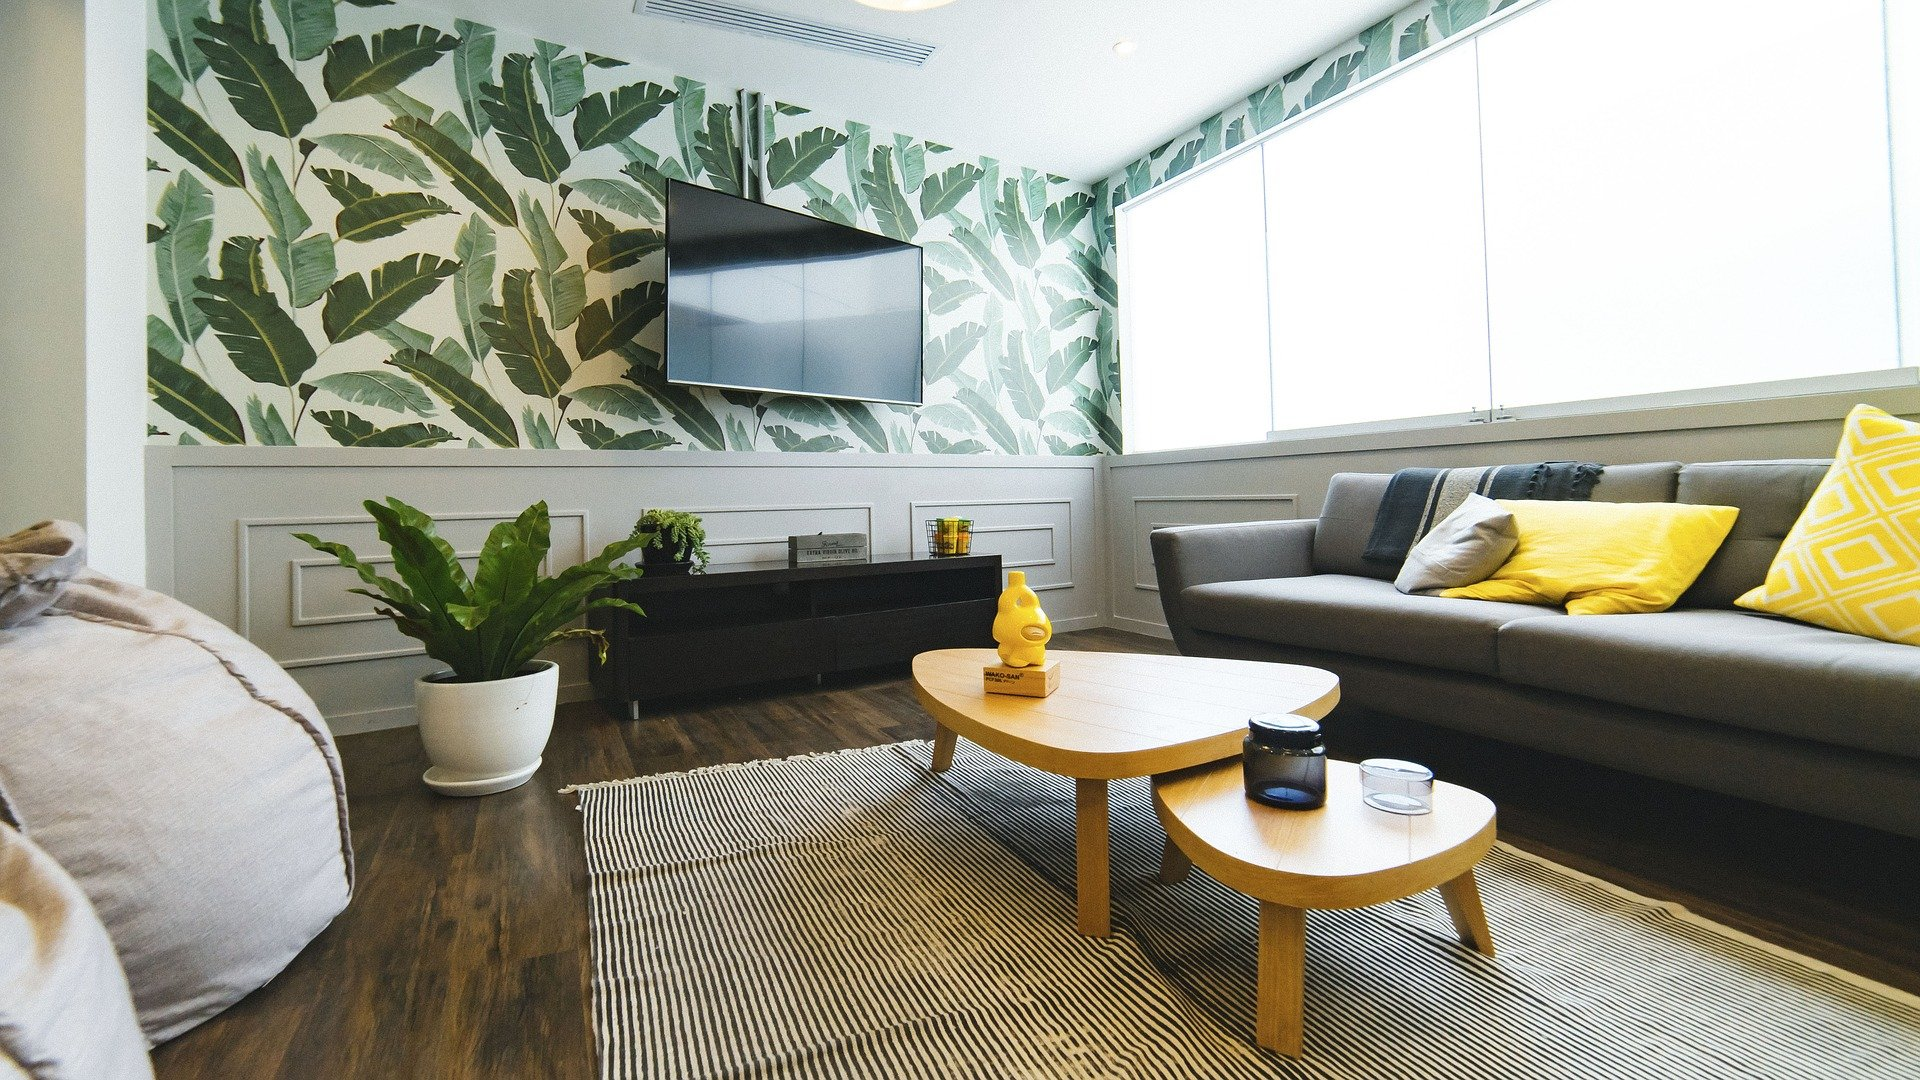 newly remodeled living room with plants and artwork mounted on wall